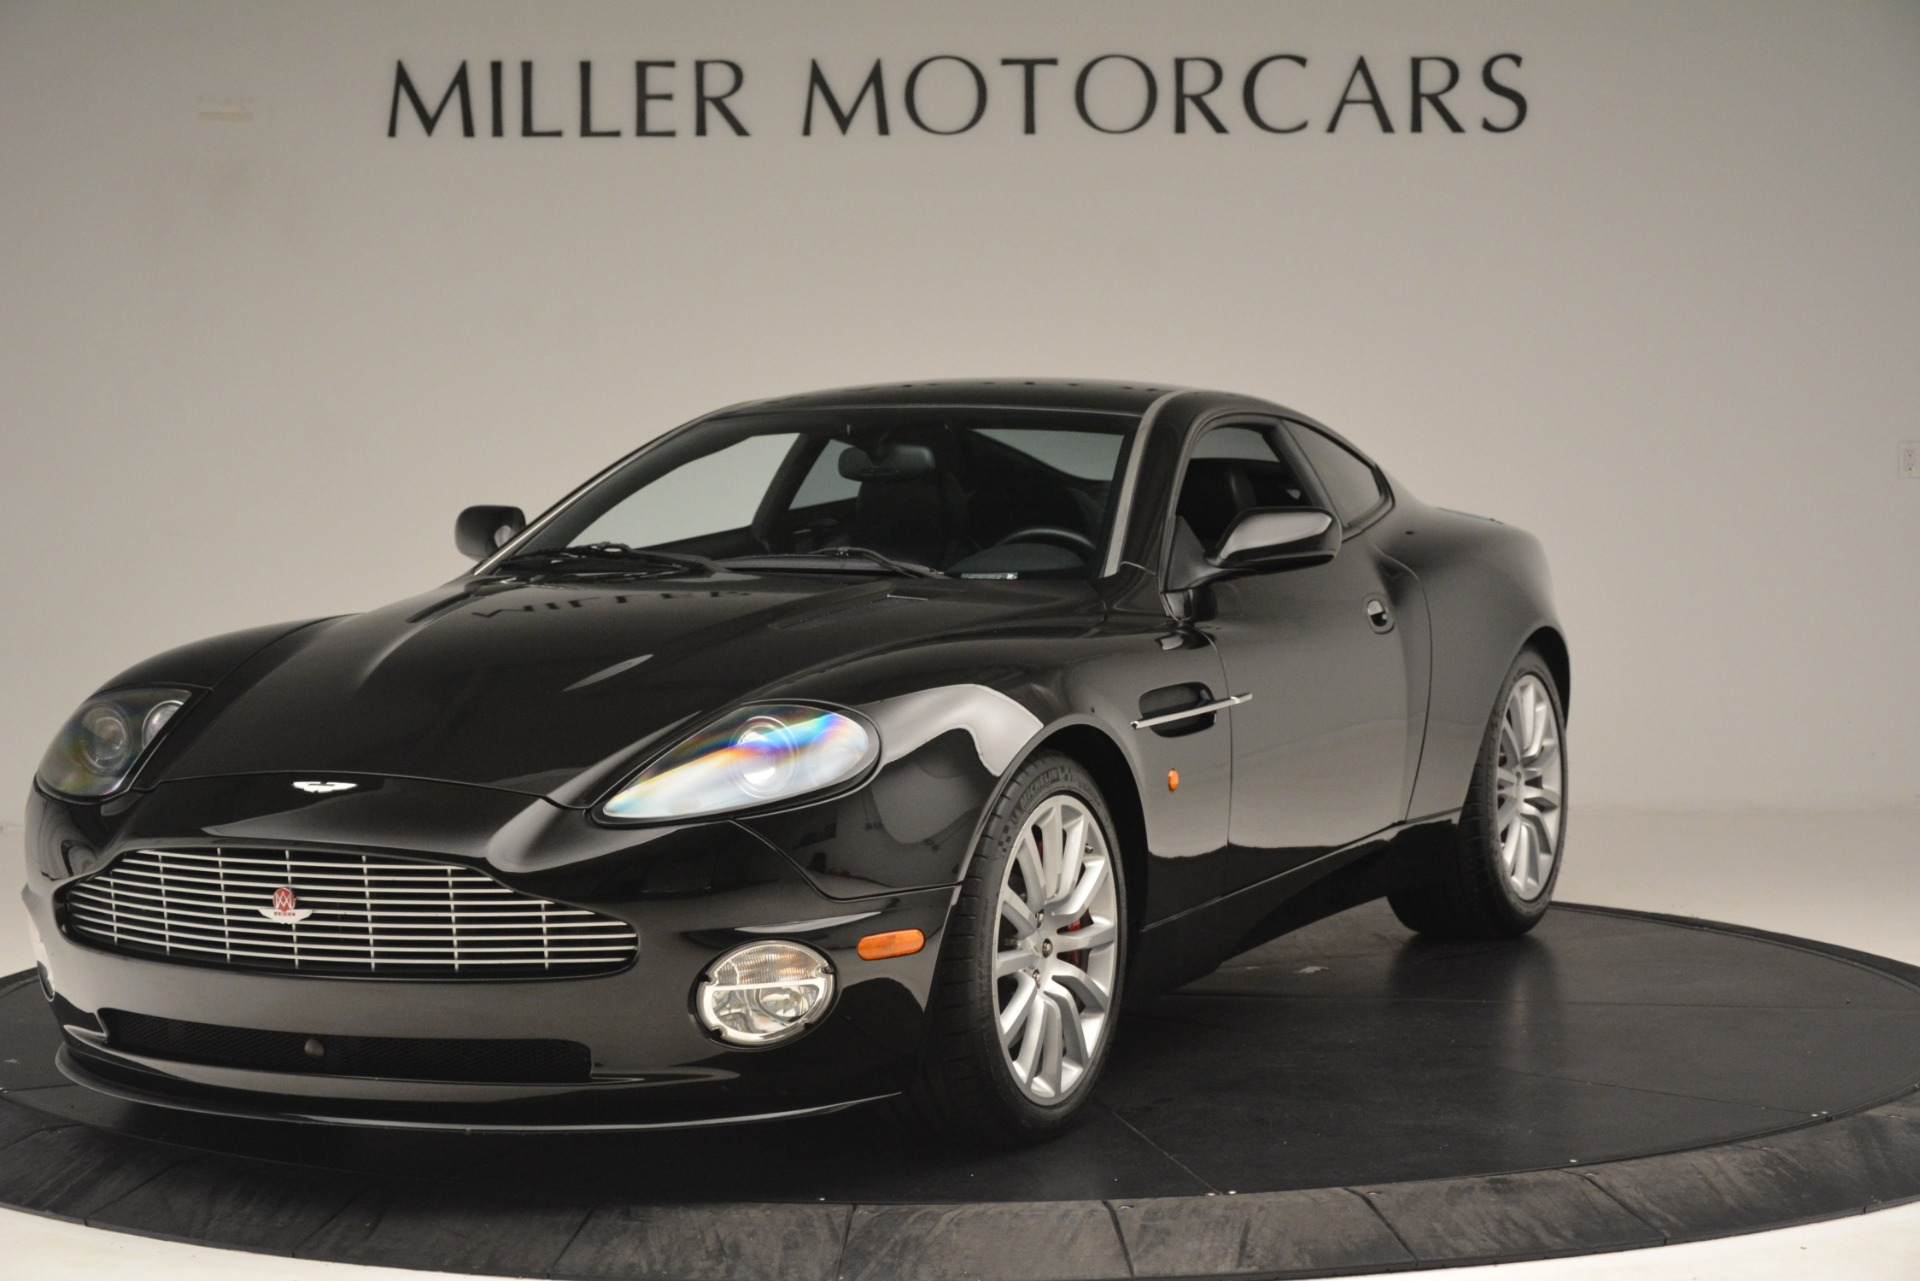 Used 2004 Aston Martin V12 Vanquish for sale Sold at Pagani of Greenwich in Greenwich CT 06830 1